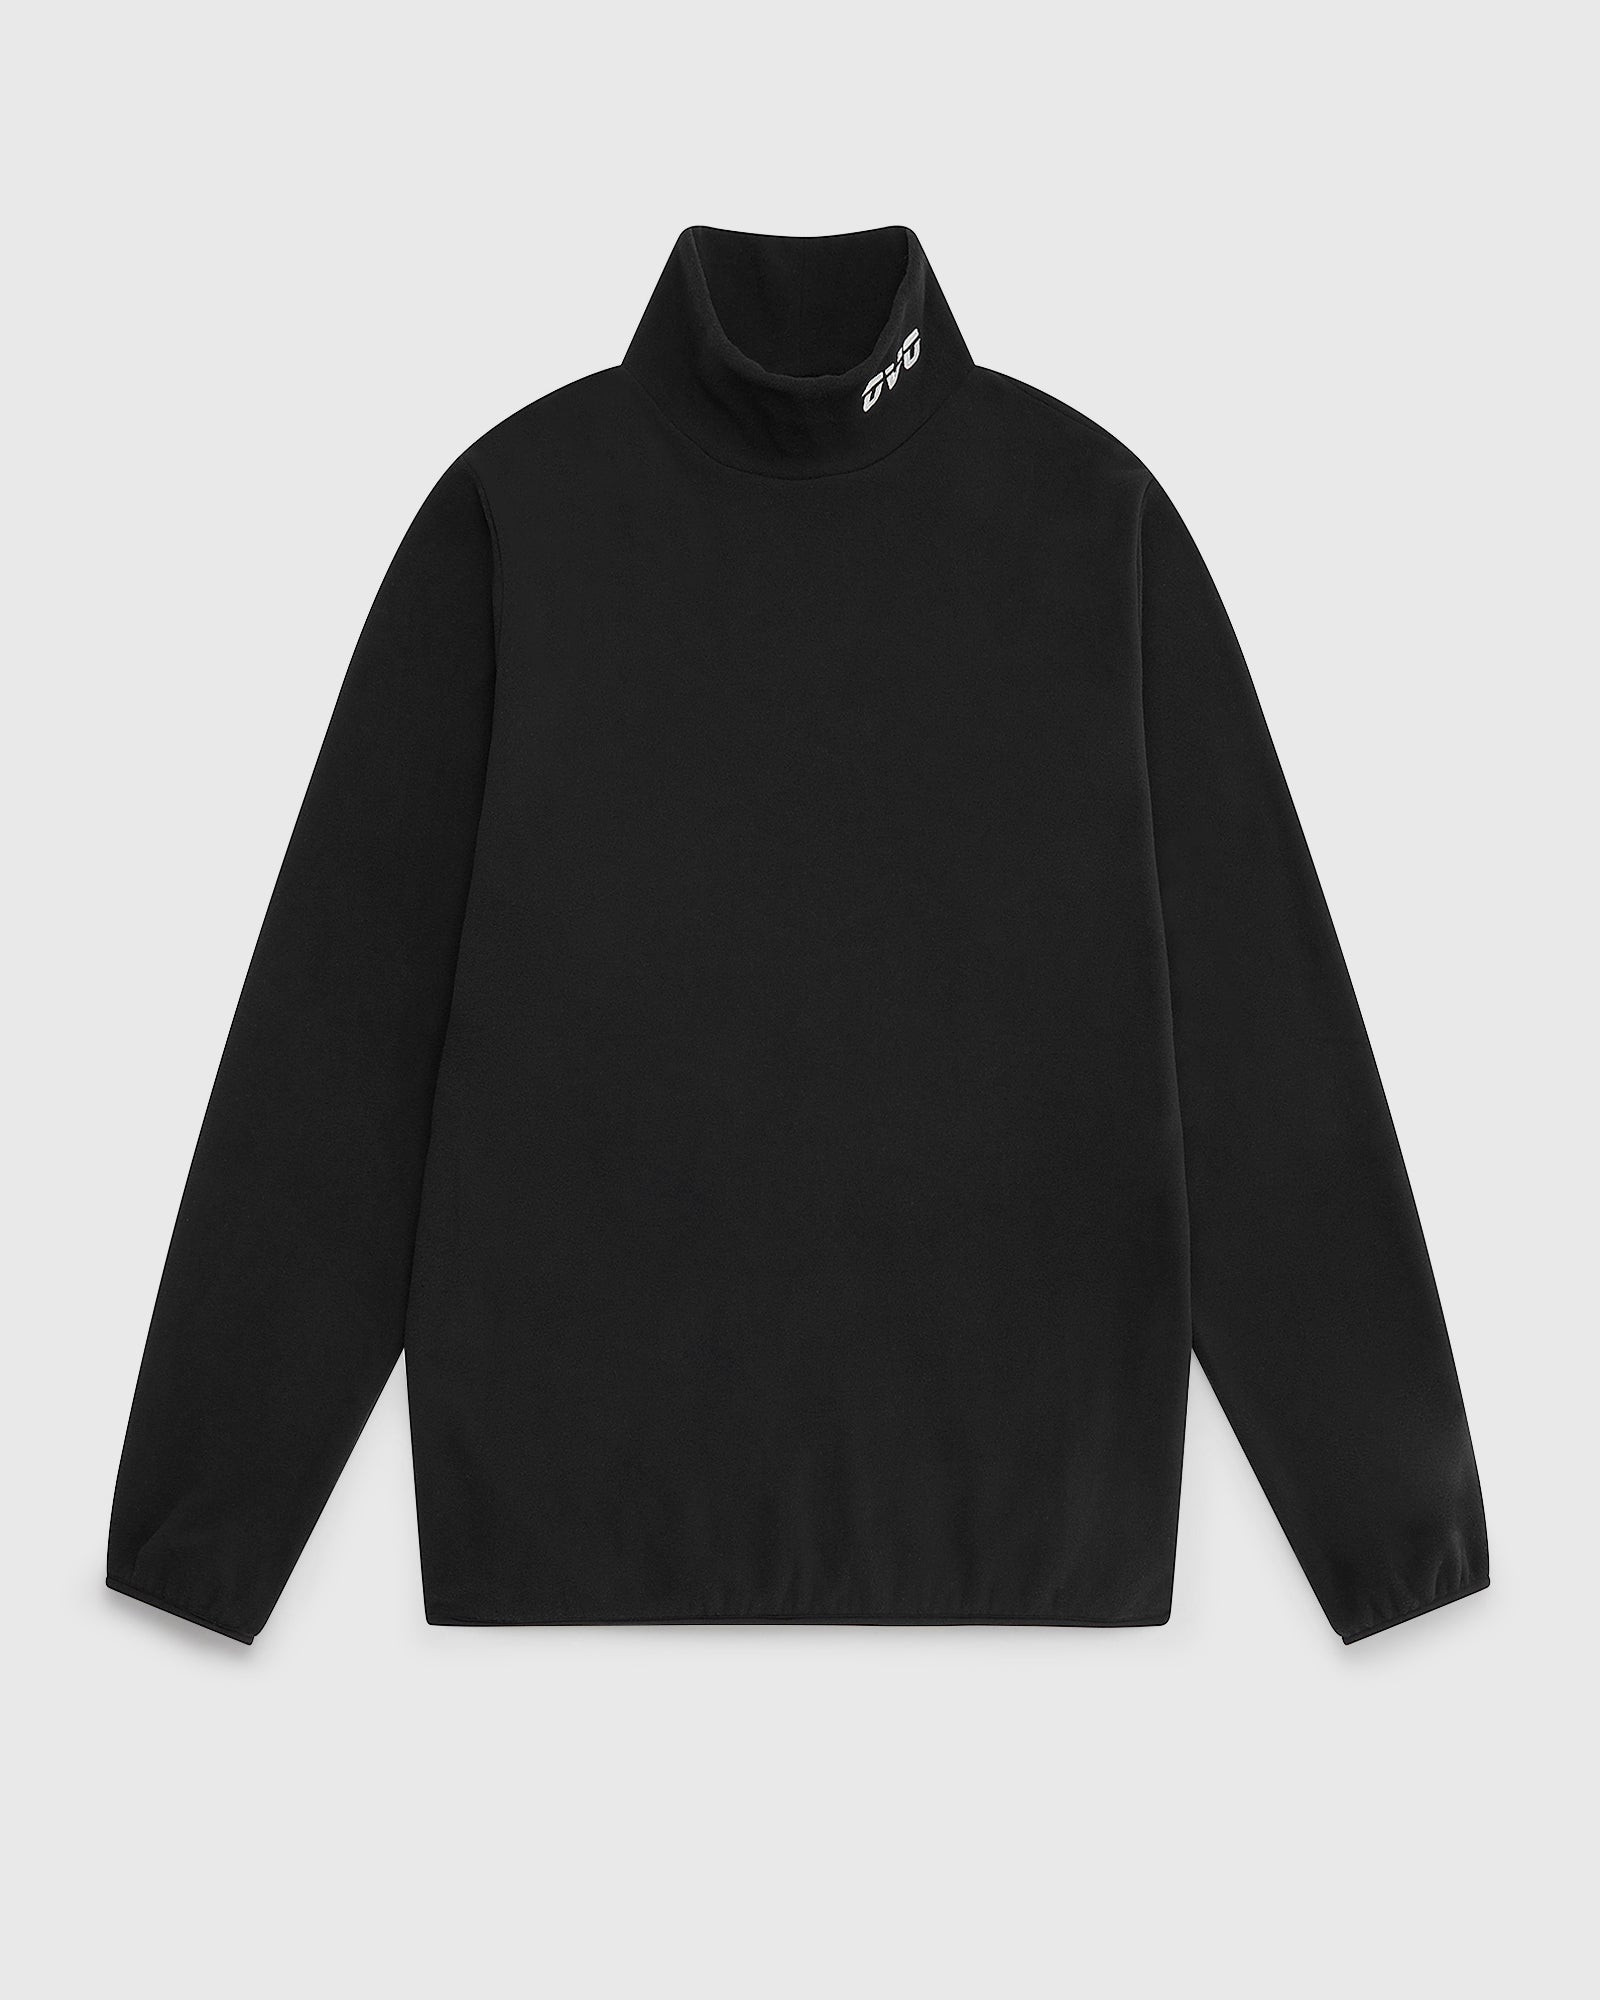 OVO RUNNER MICROFLEECE MOCK NECK - BLACK IMAGE #1